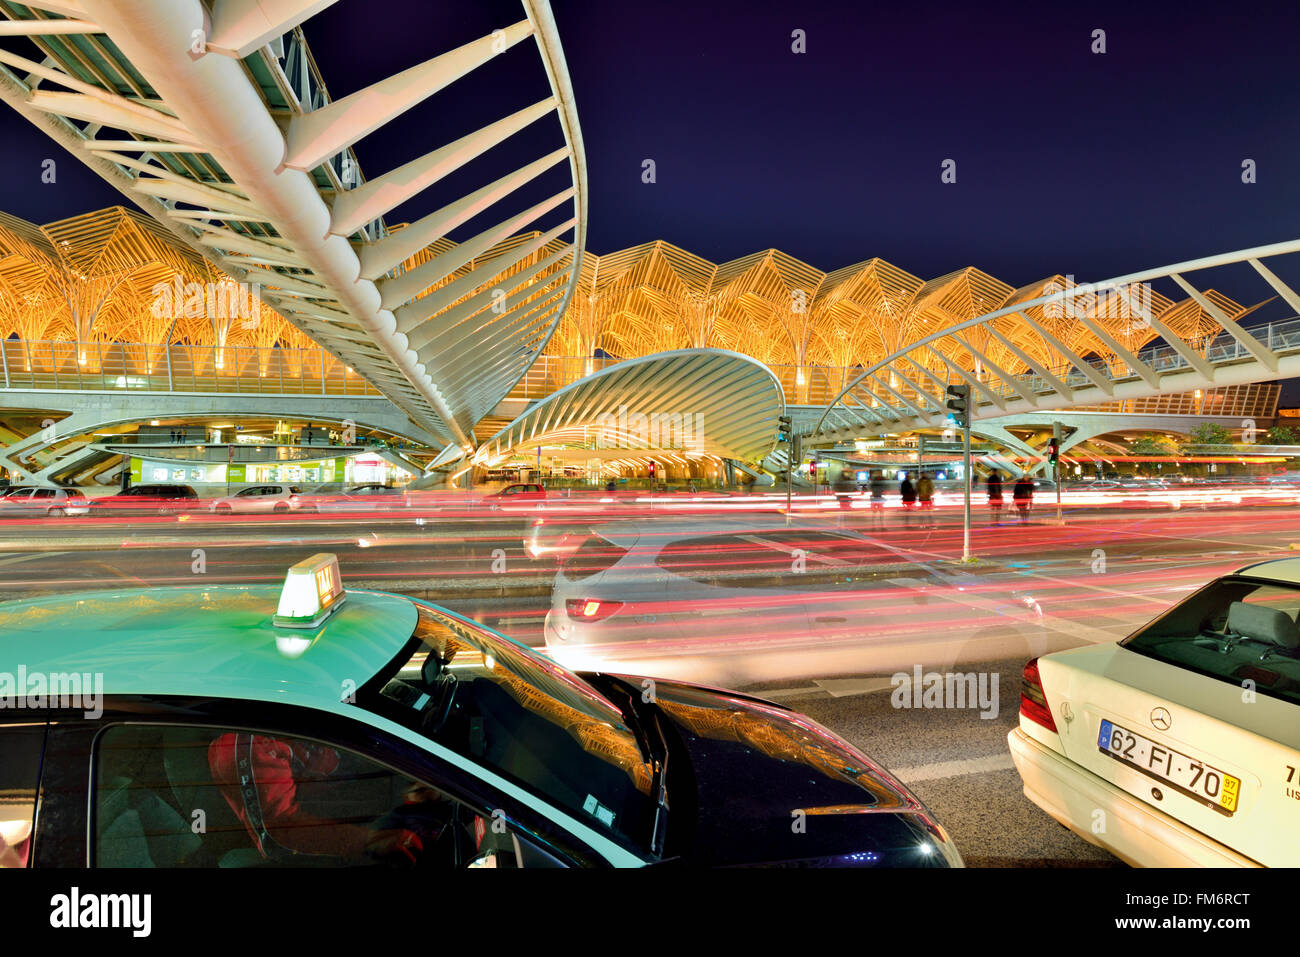 Portugal, Lisbon: Nocturnal movement at the station Garé do Oriente - Stock Image